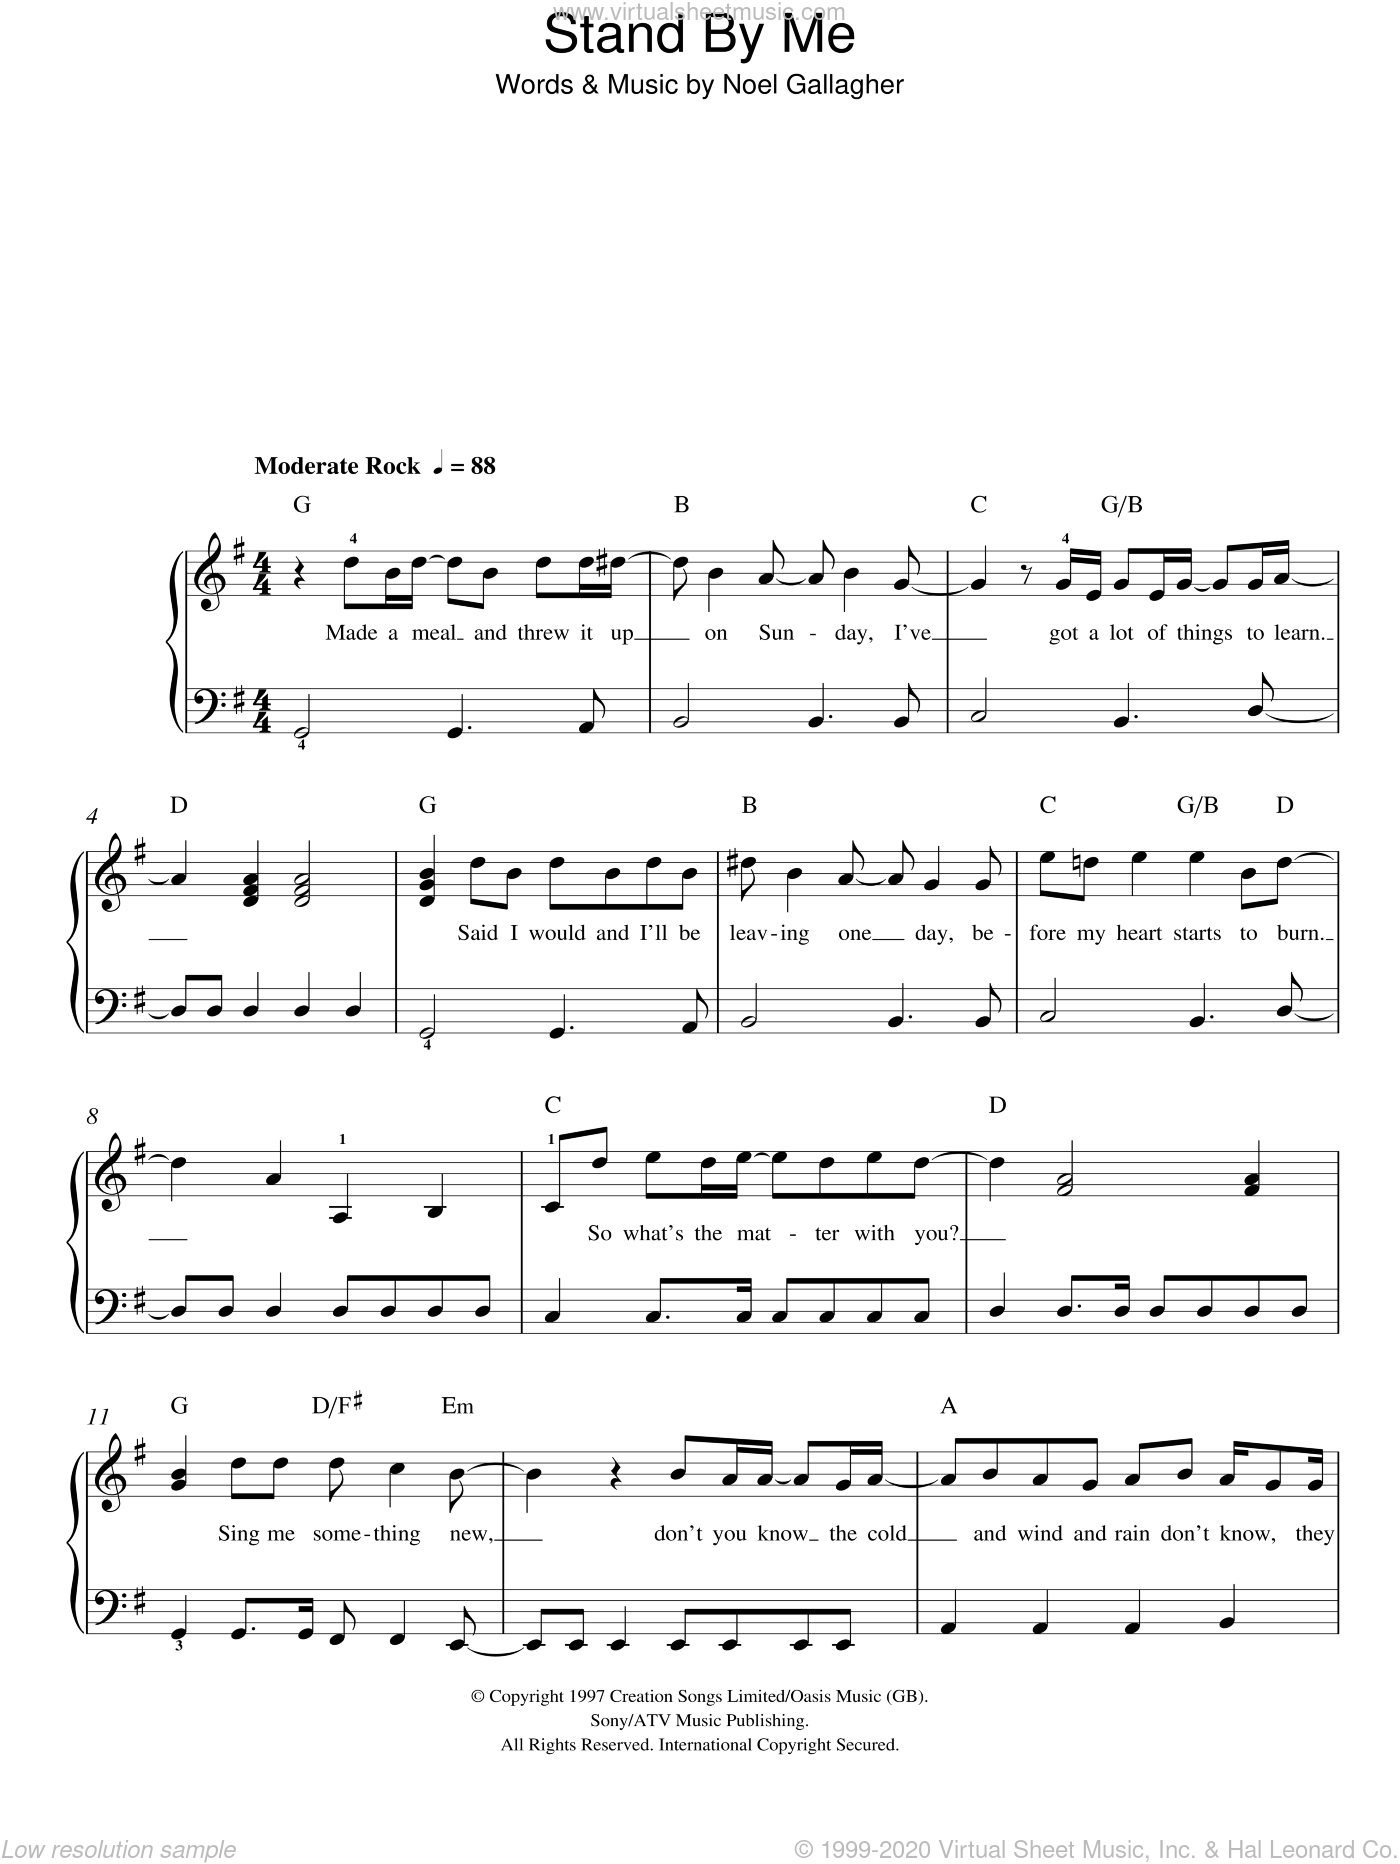 Stand By Me sheet music for piano solo by Oasis, Merle Travis and Noel Gallagher, easy skill level